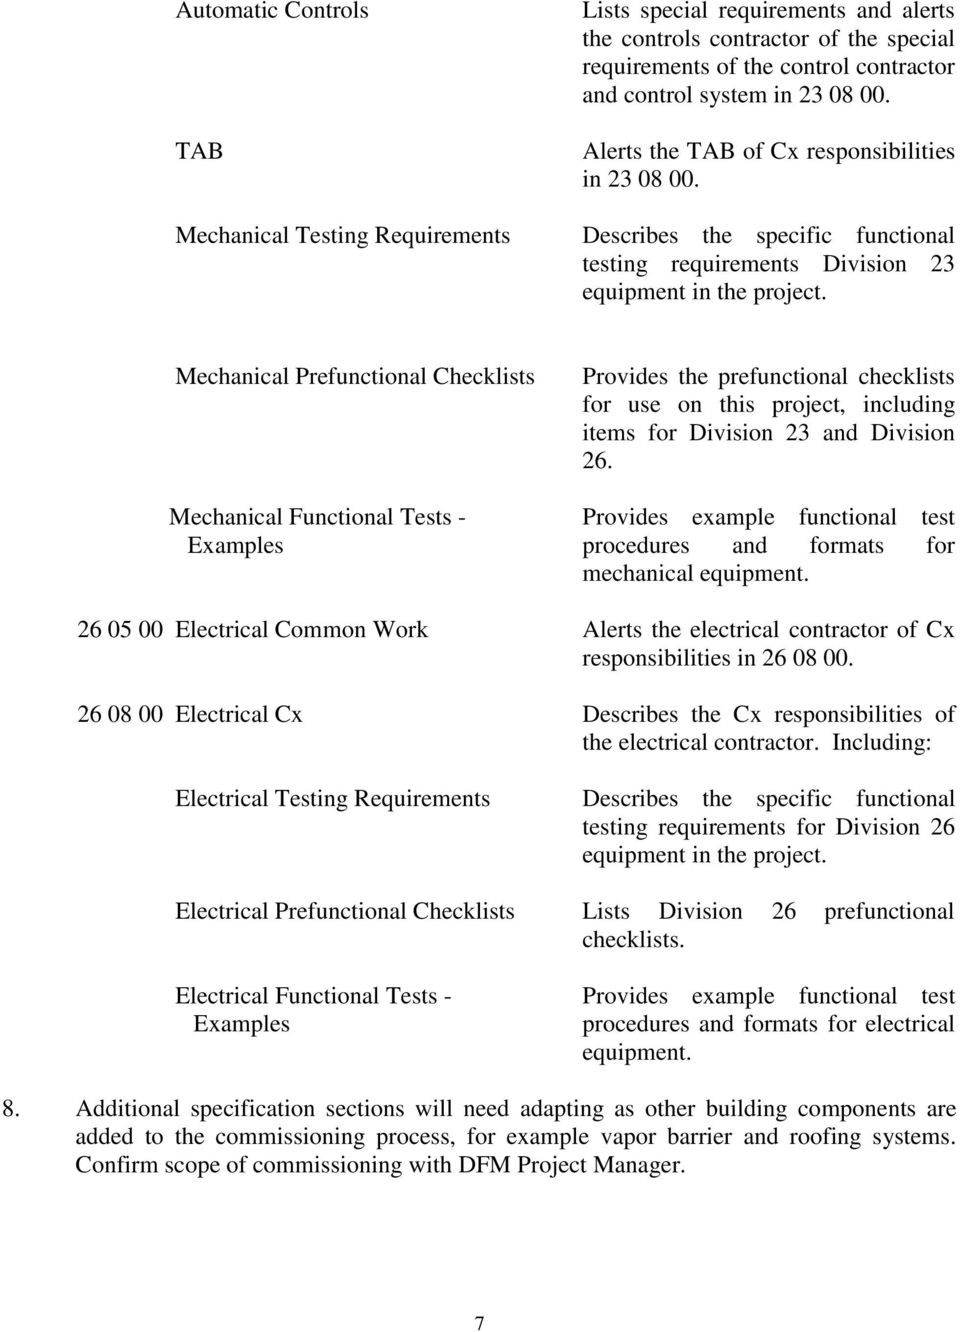 Mechanical Prefunctional Checklists Mechanical Functional Tests - Examples Provides the prefunctional checklists for use on this project, including items for Division 23 and Division 26.